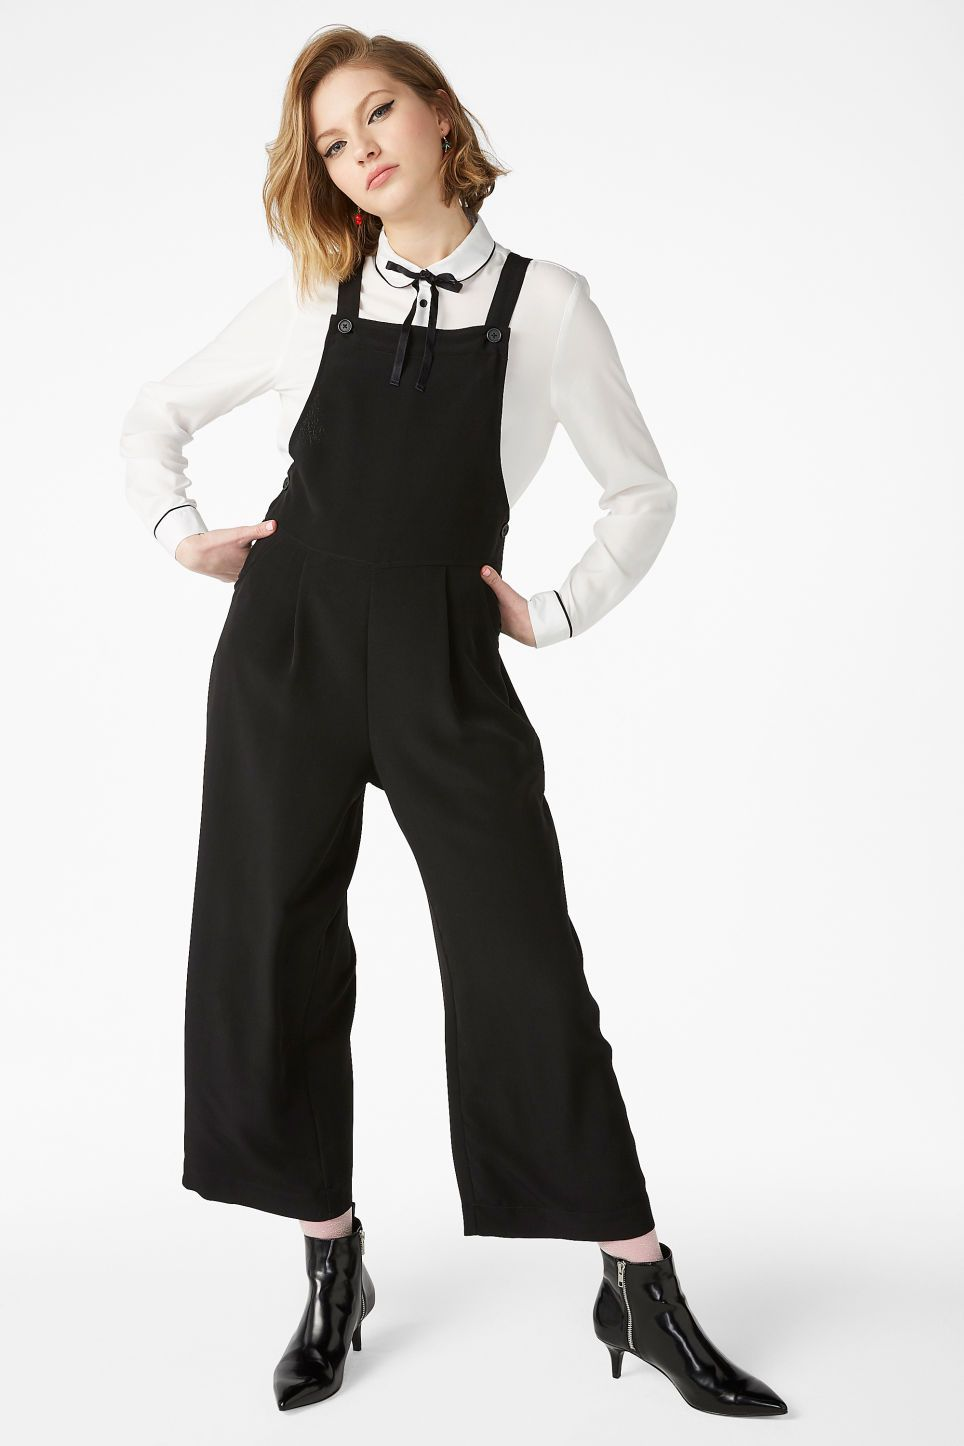 2b8f328cc44 Classy wide leg dungarees that buttons up by the hips. And yes